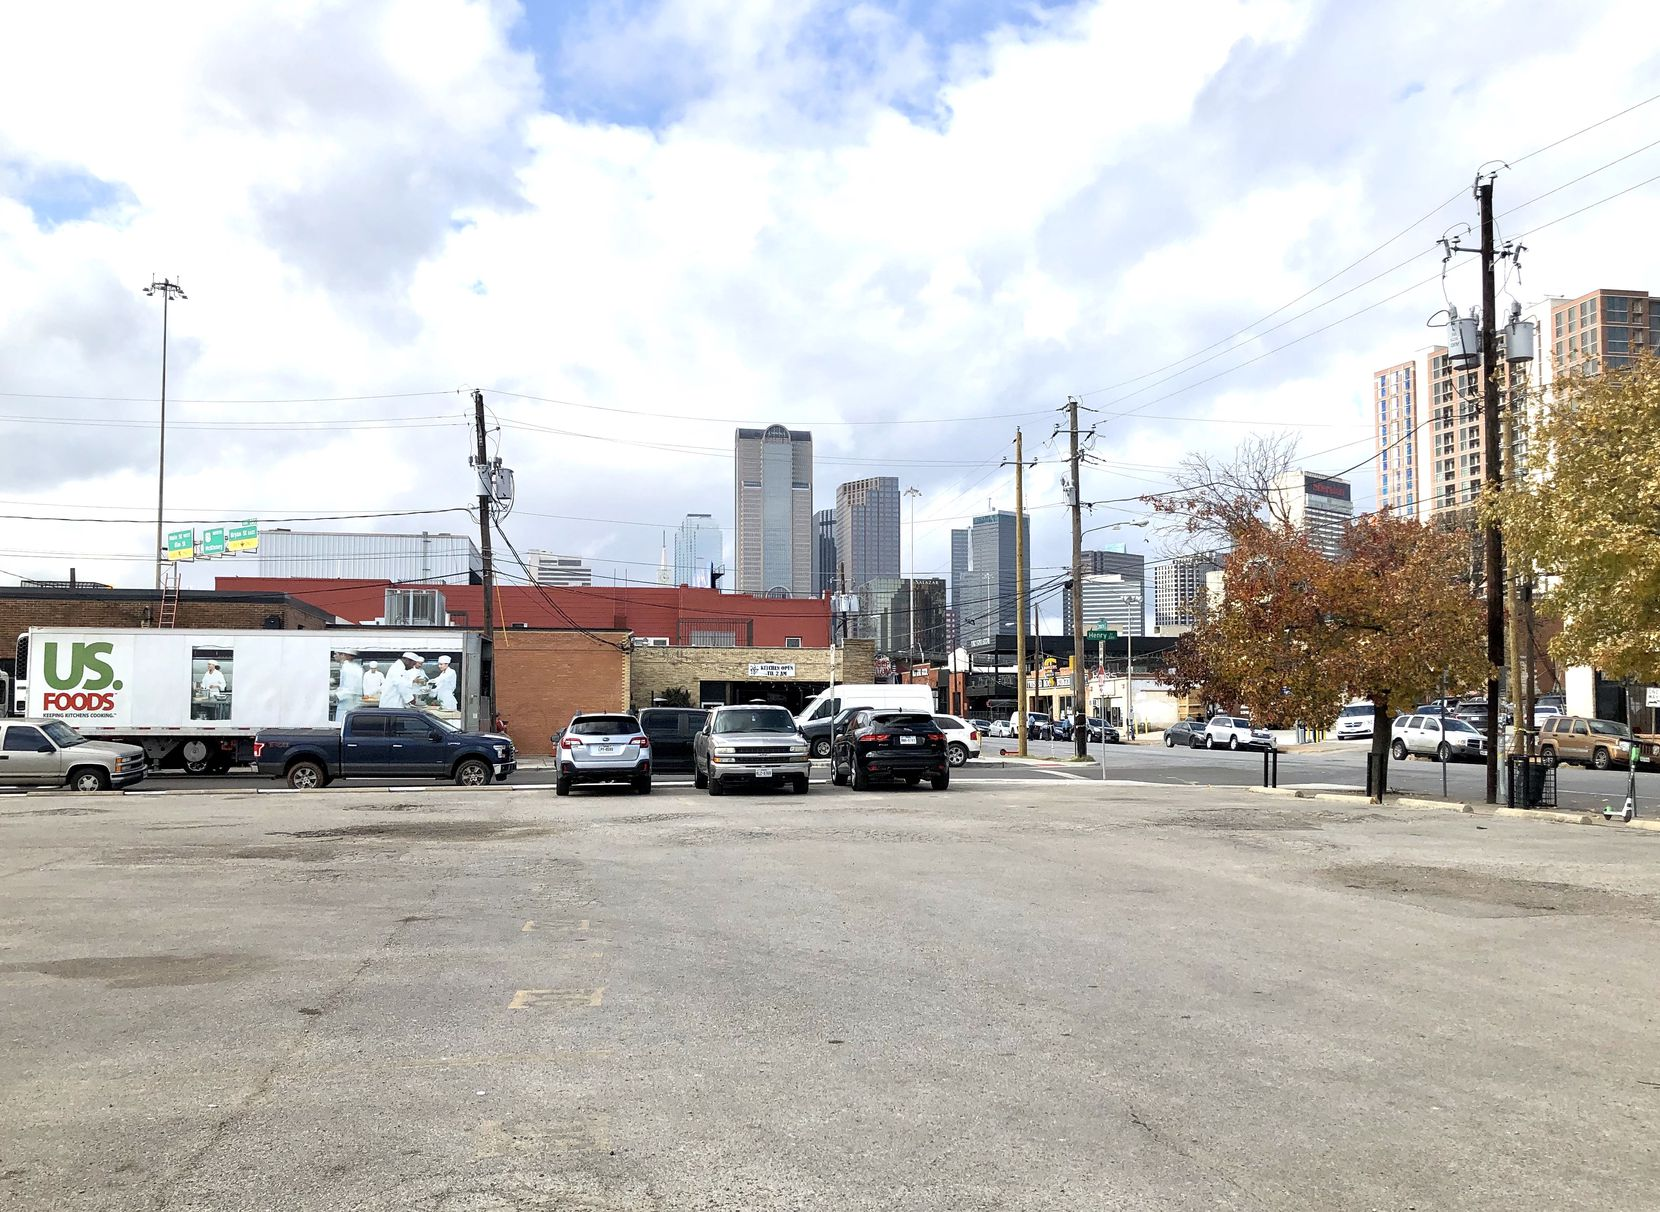 The building site is now a parking lot on Commerce Street east of downtown.